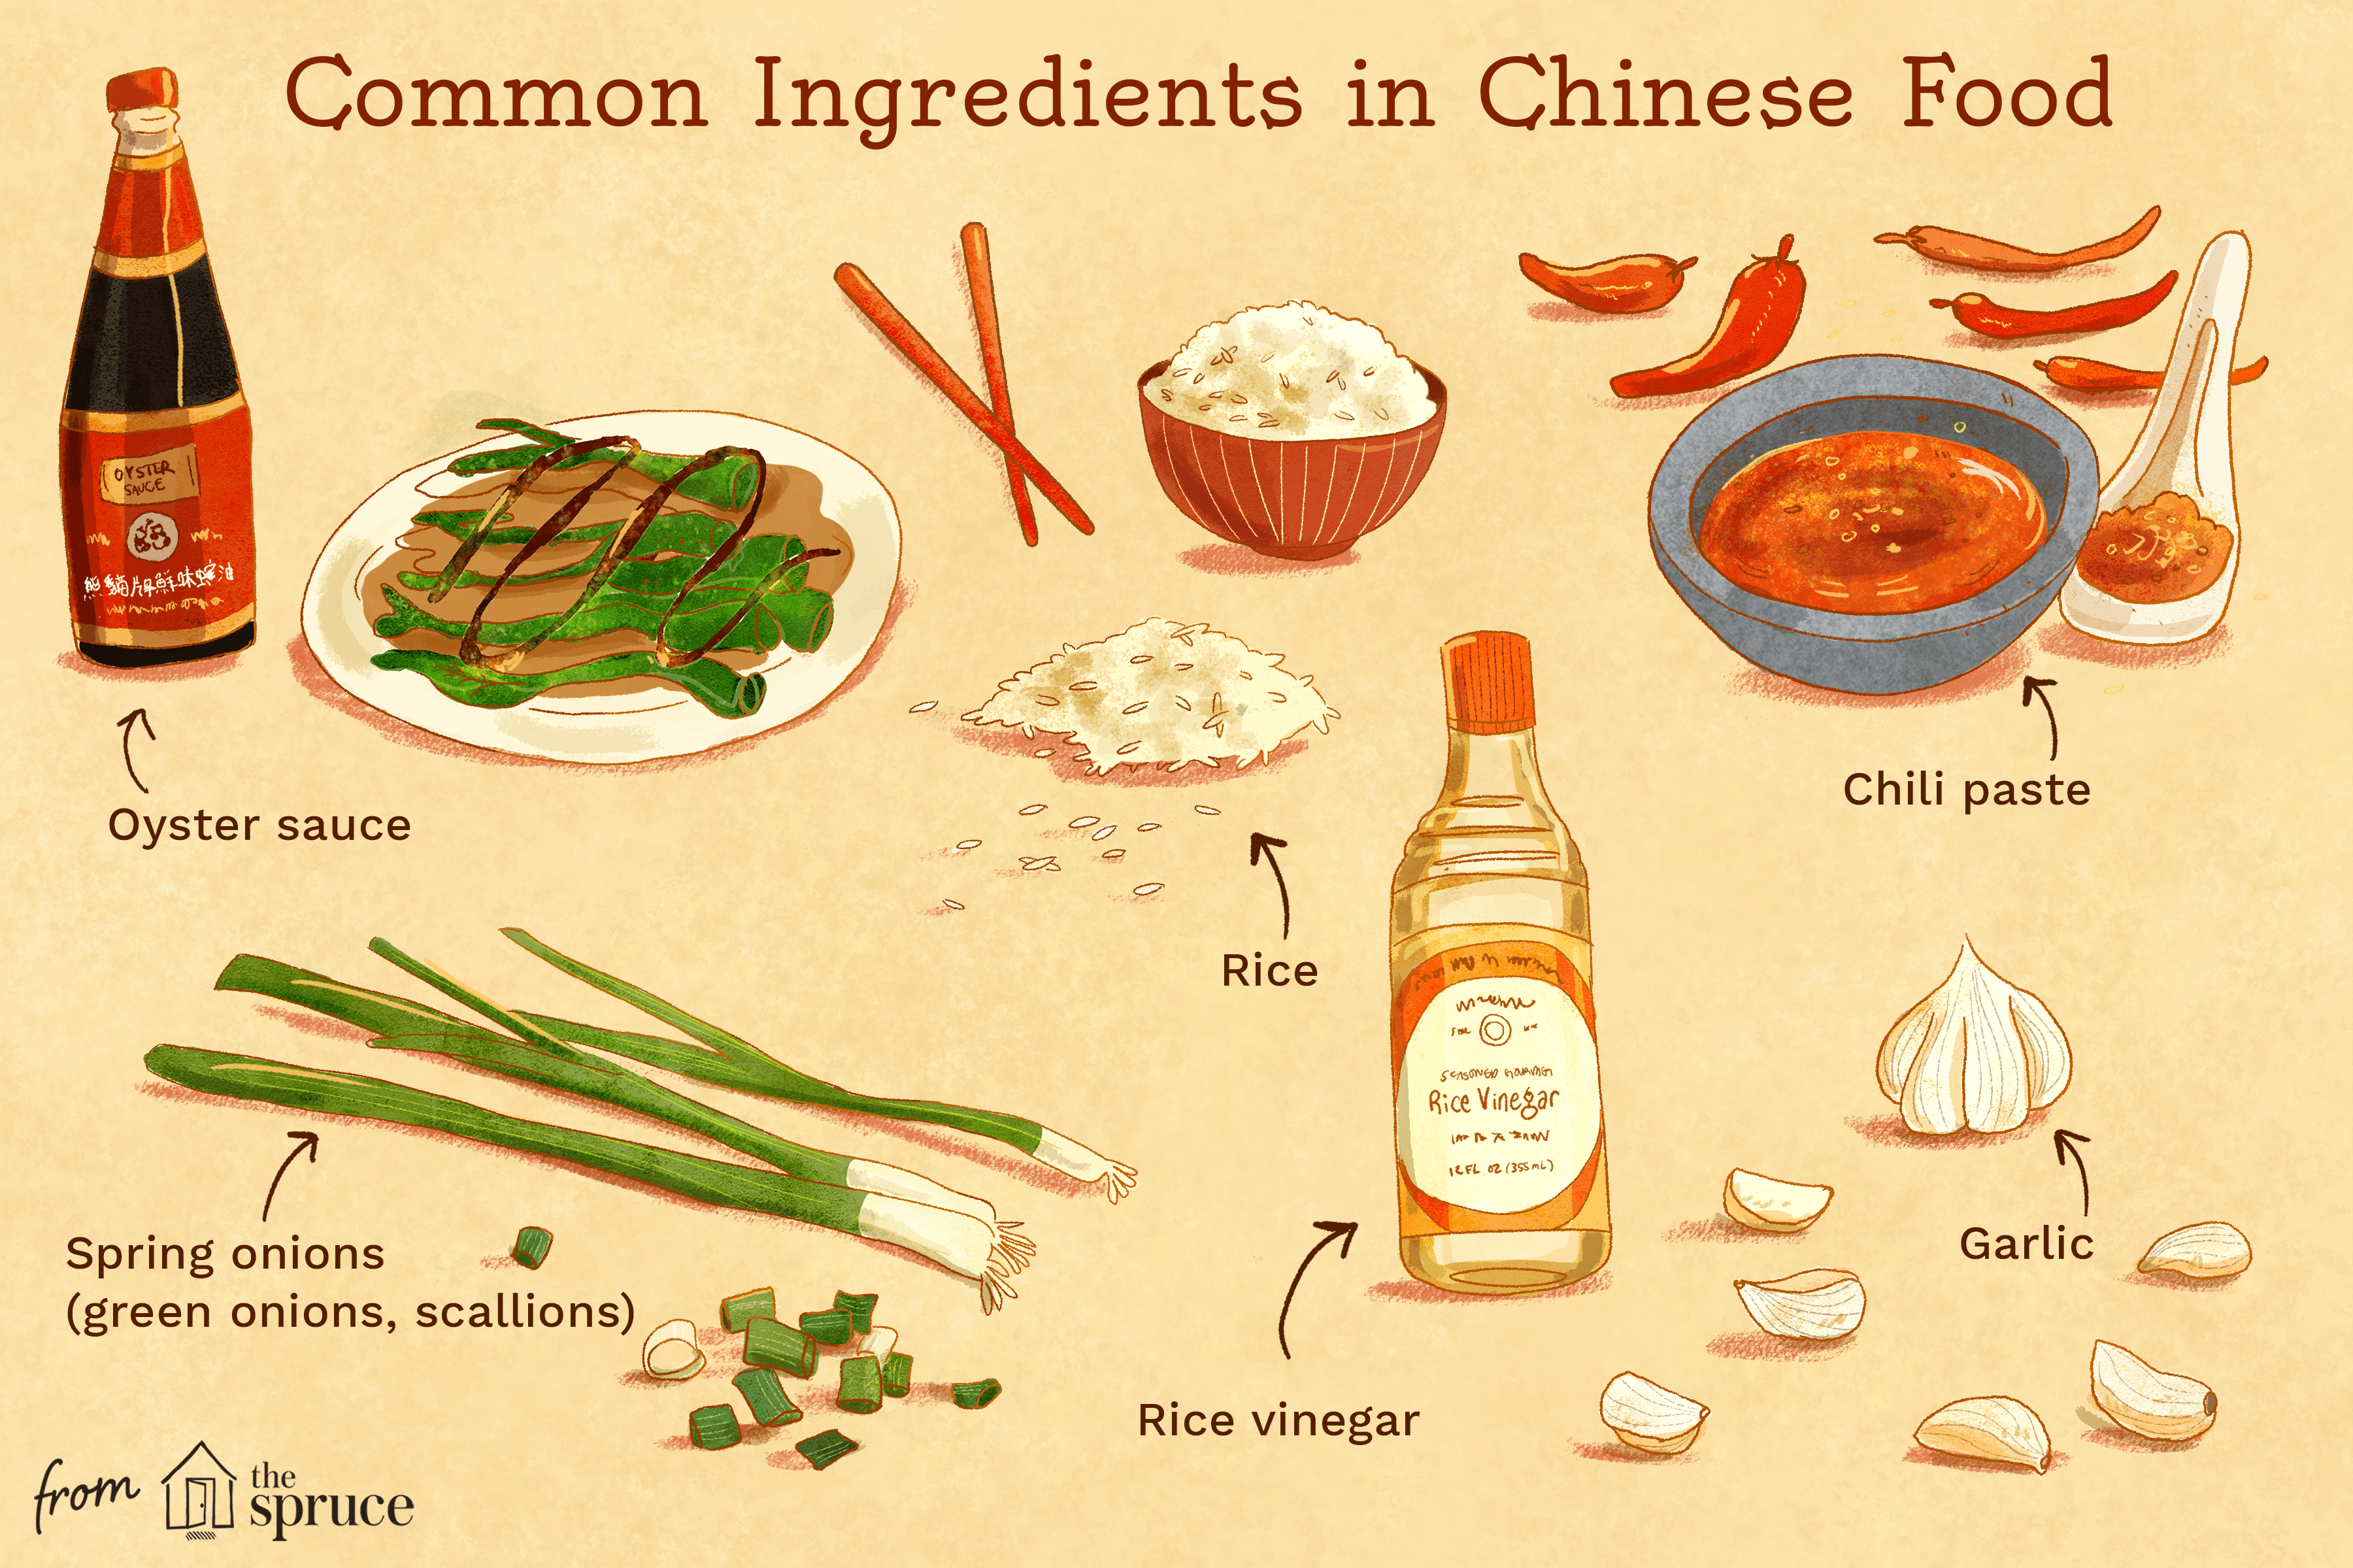 Illustration showing common ingredients in Chinese cooking